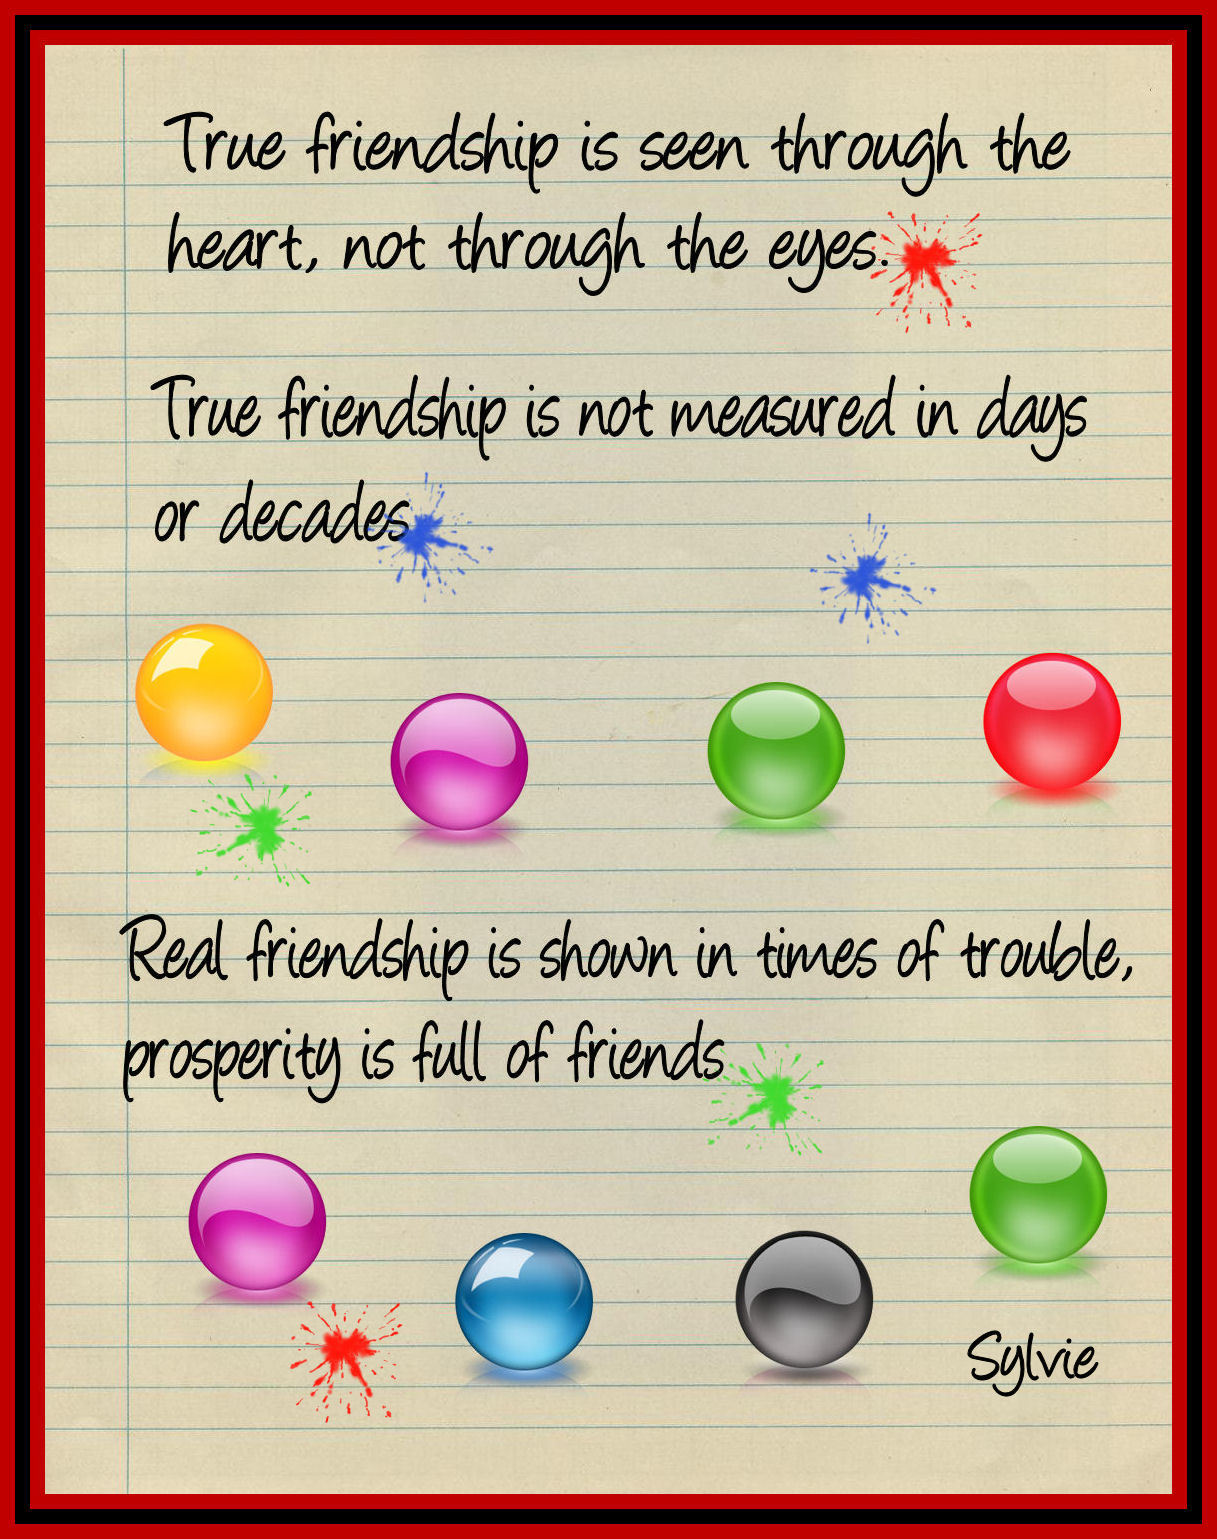 Inspiring Quotes About Friendship 30 Heart Touching Friendship Quotes  Life Quotes